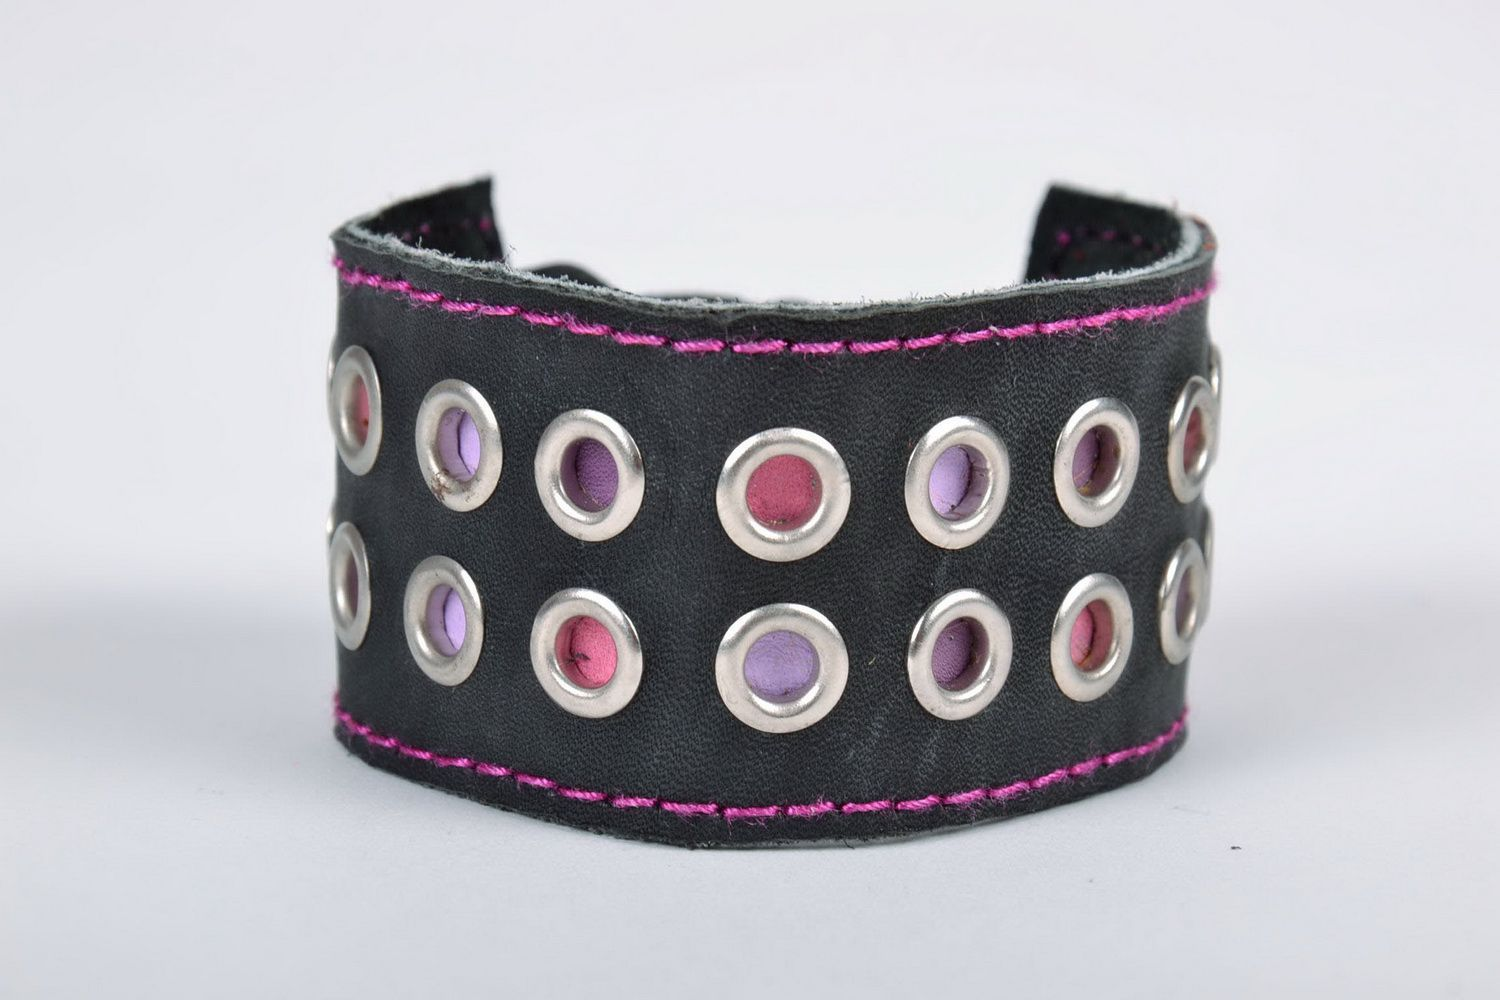 leather bracelets Wide black leather bracelet with rivets - MADEheart.com